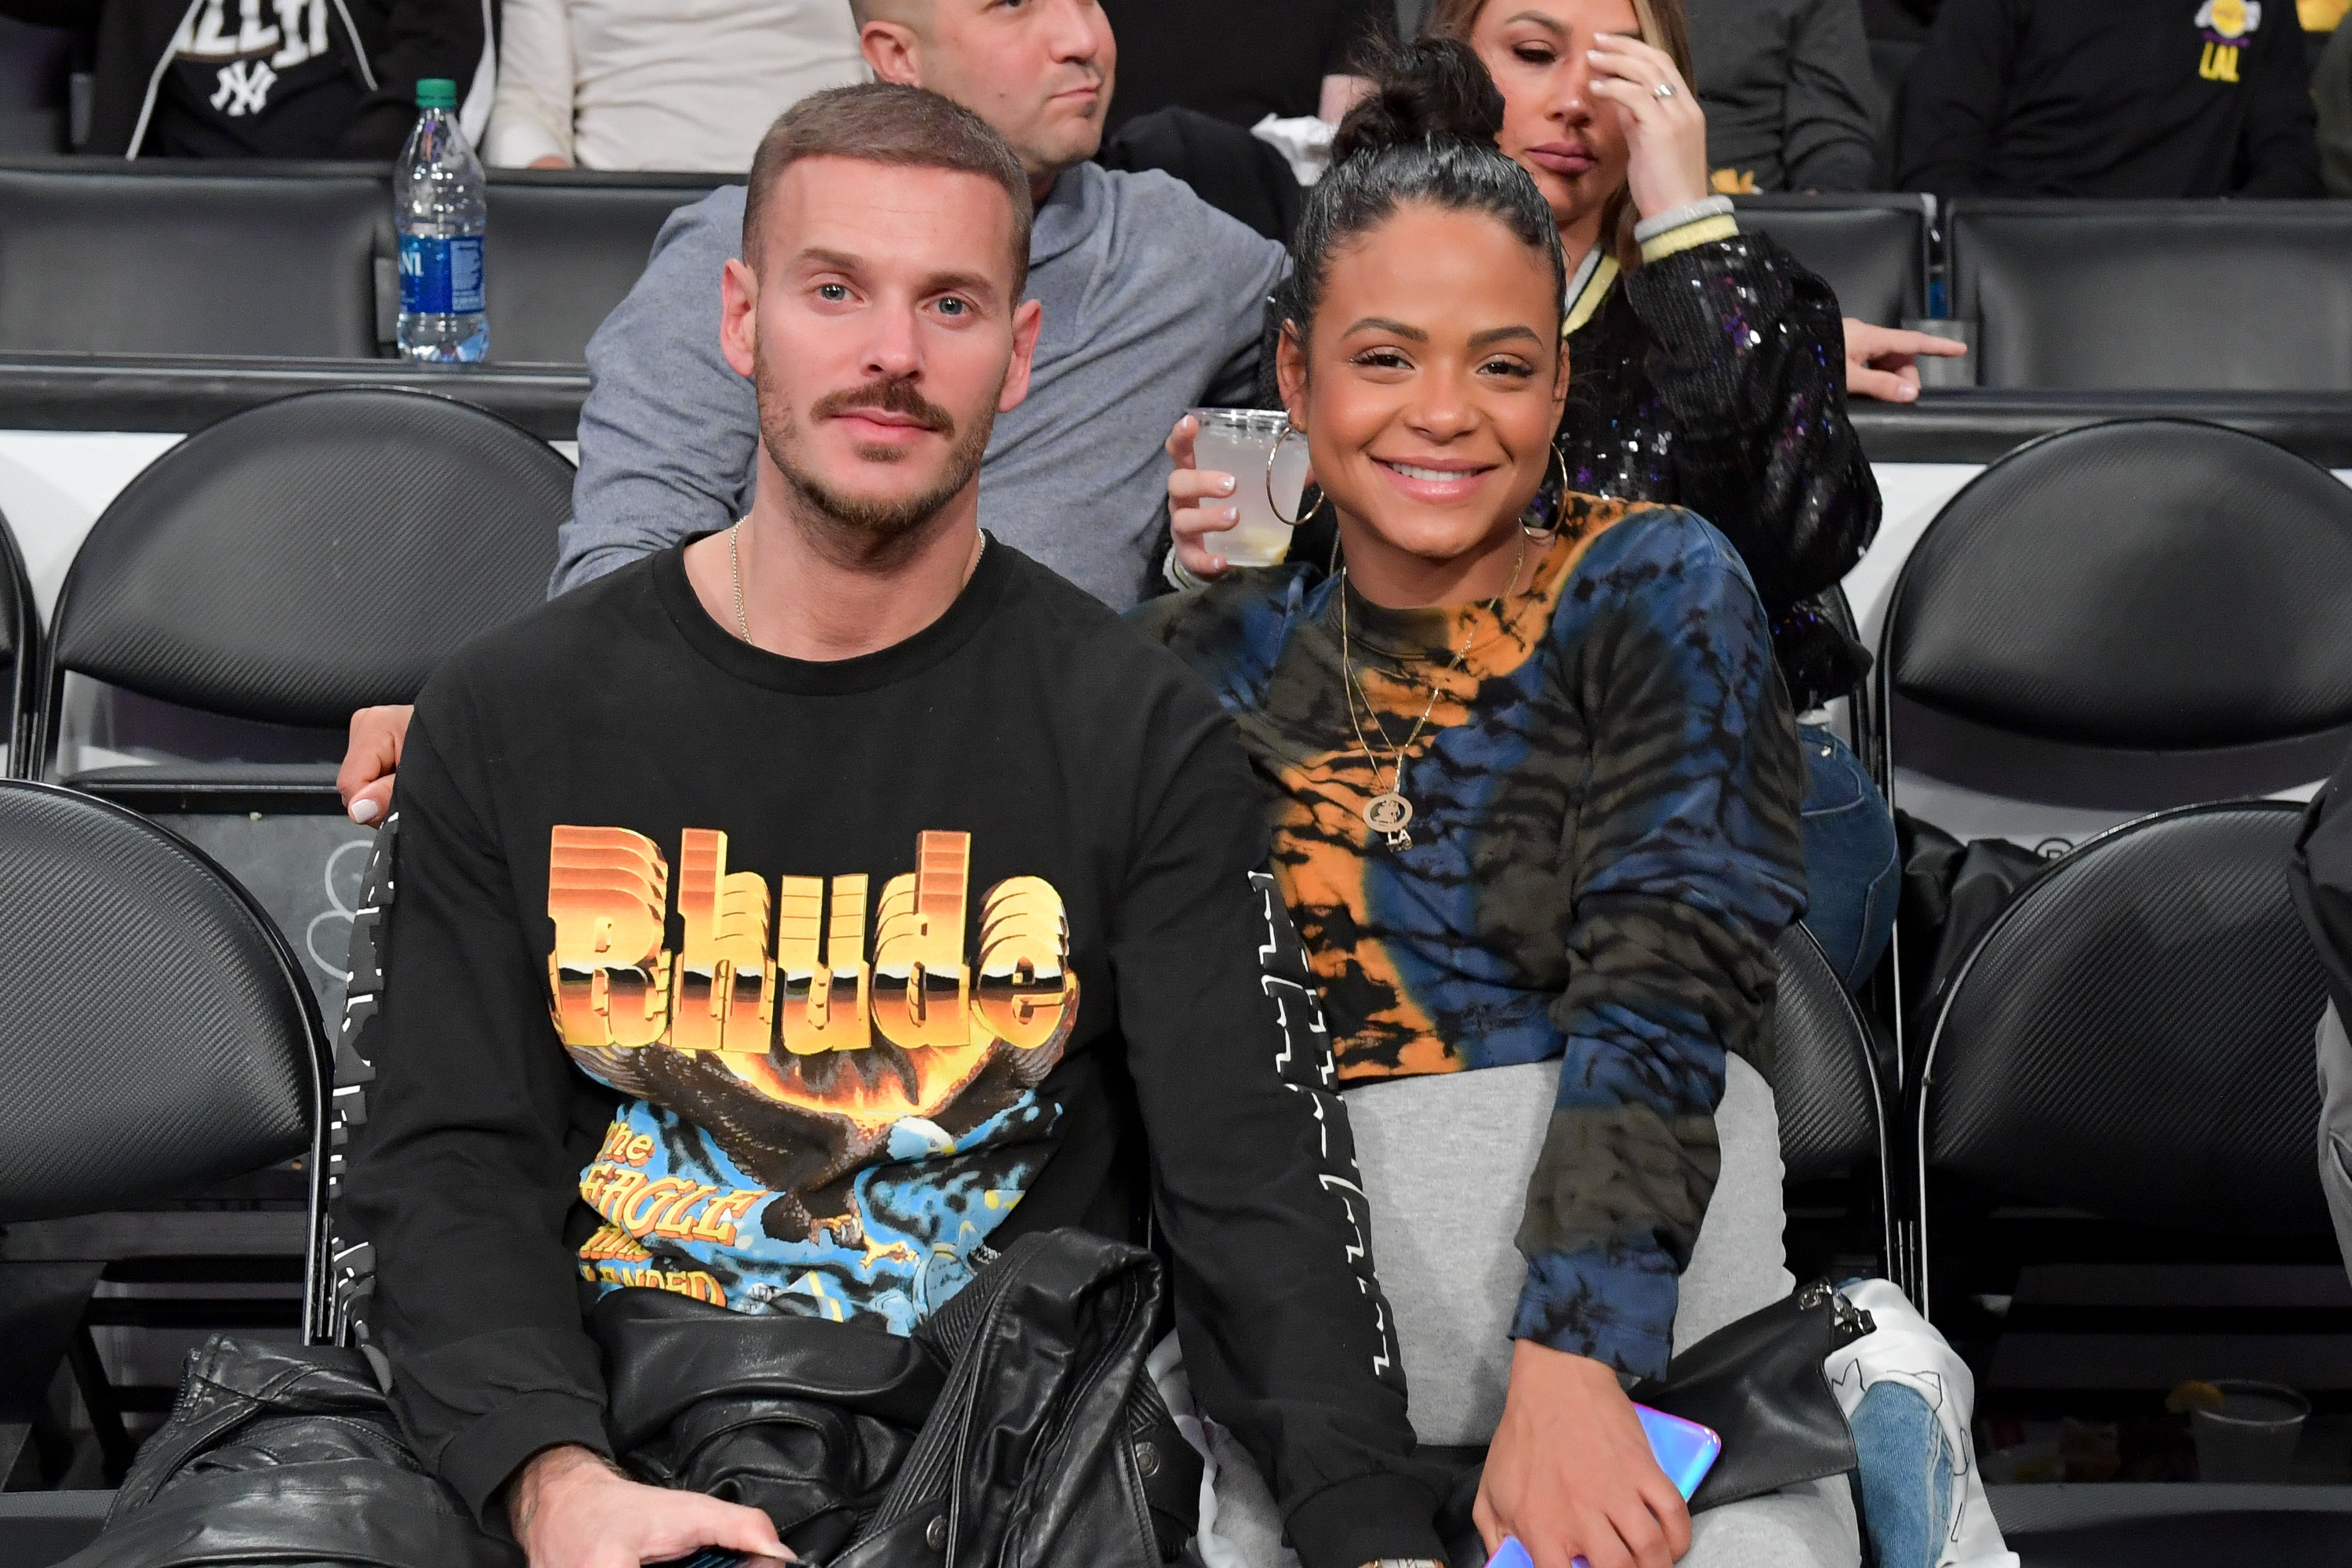 Matt Pokora and Christina Milian watch the Los Angeles Lakers play the Phoenix Suns at the Staples Center in Los Angeles on Jan. 1, 2020.